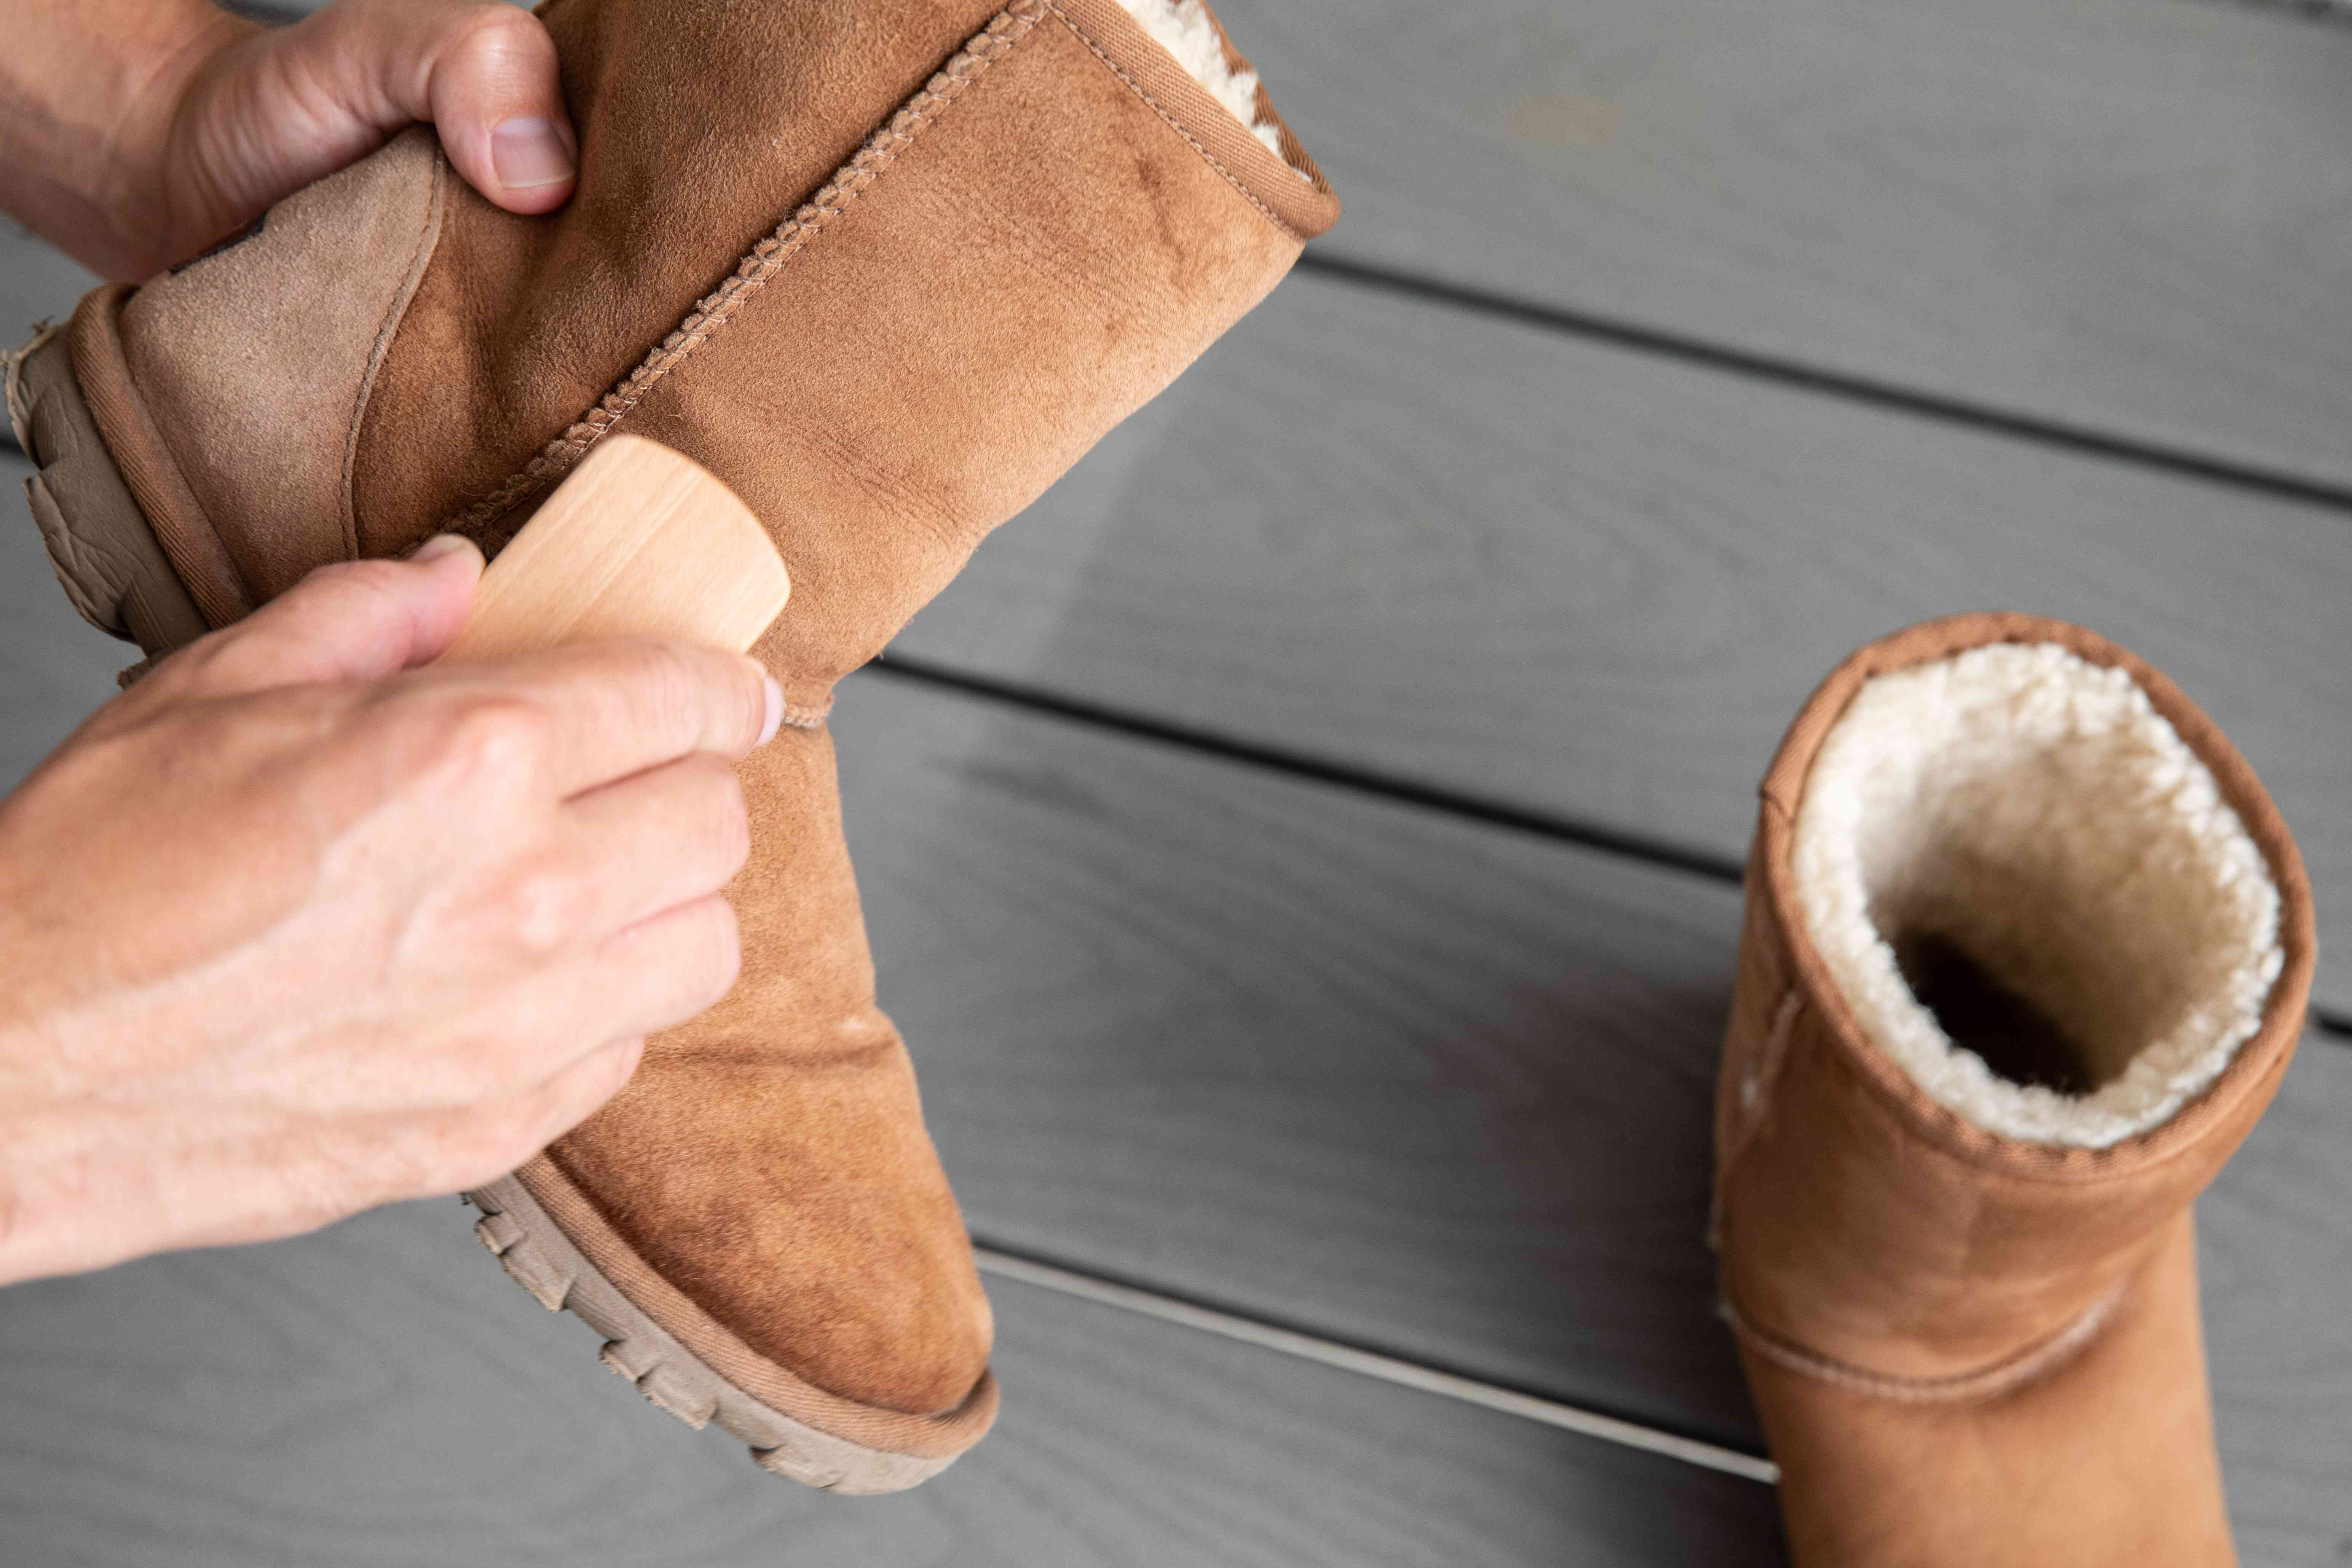 Someone brushing away scuff marks on Ugg boots